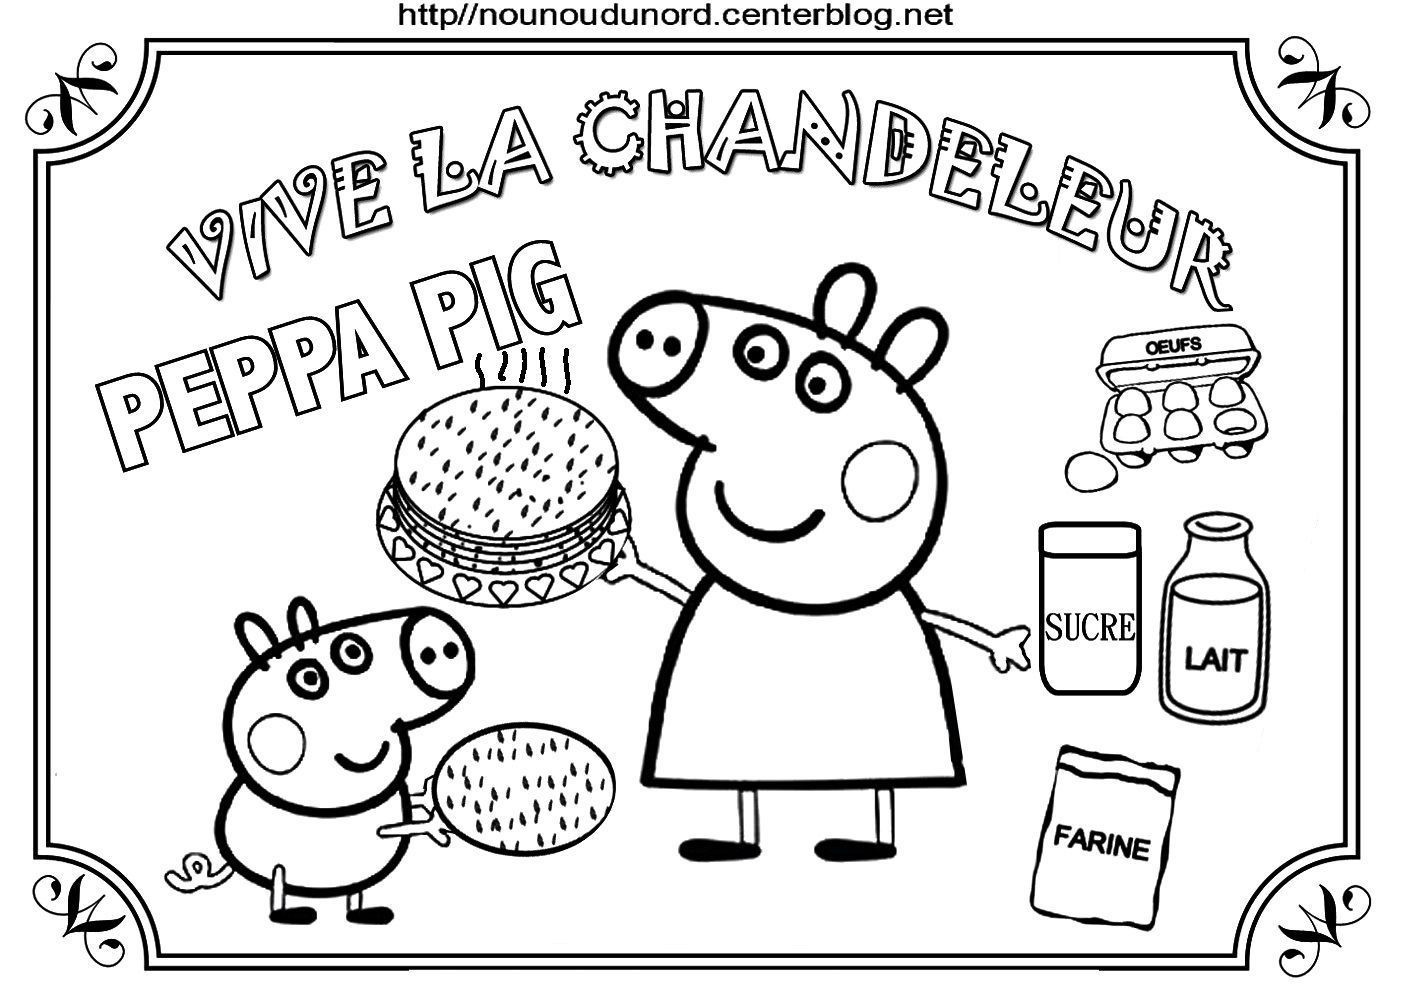 Coloriages crepes chandeleur - Dessin de peppa pig ...